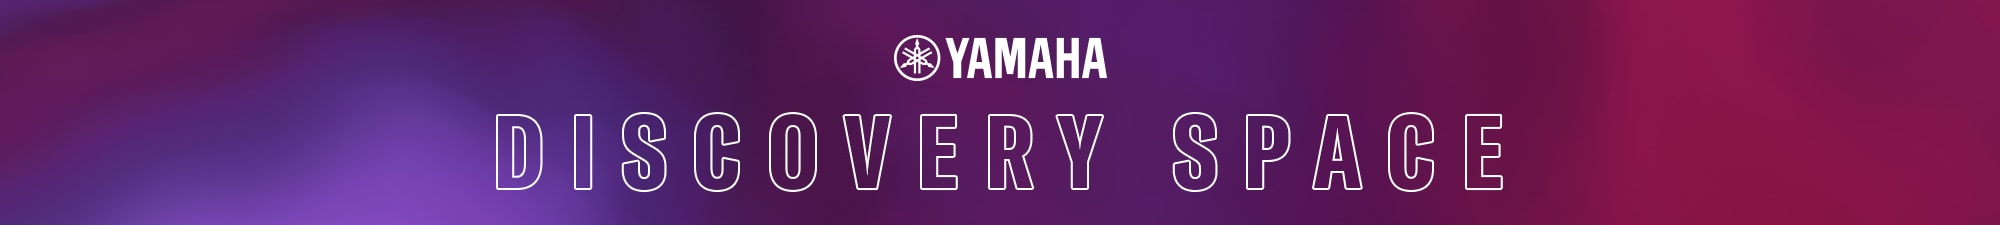 Yamaha Discovery Space